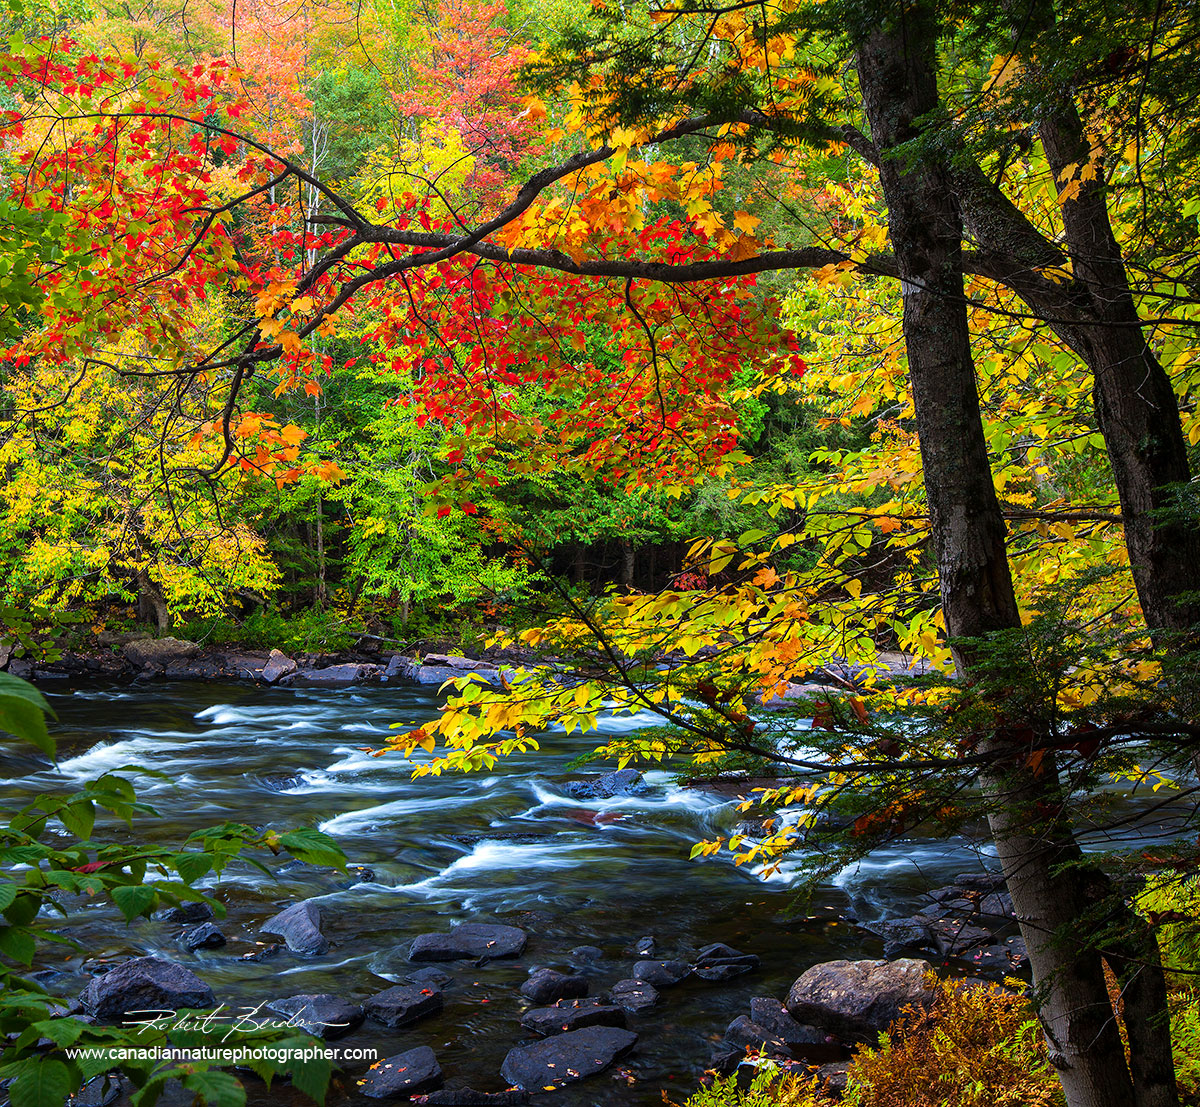 Autumn on the Oxtongue River near Algonguin Park, Ontario by Robert Berdan ©